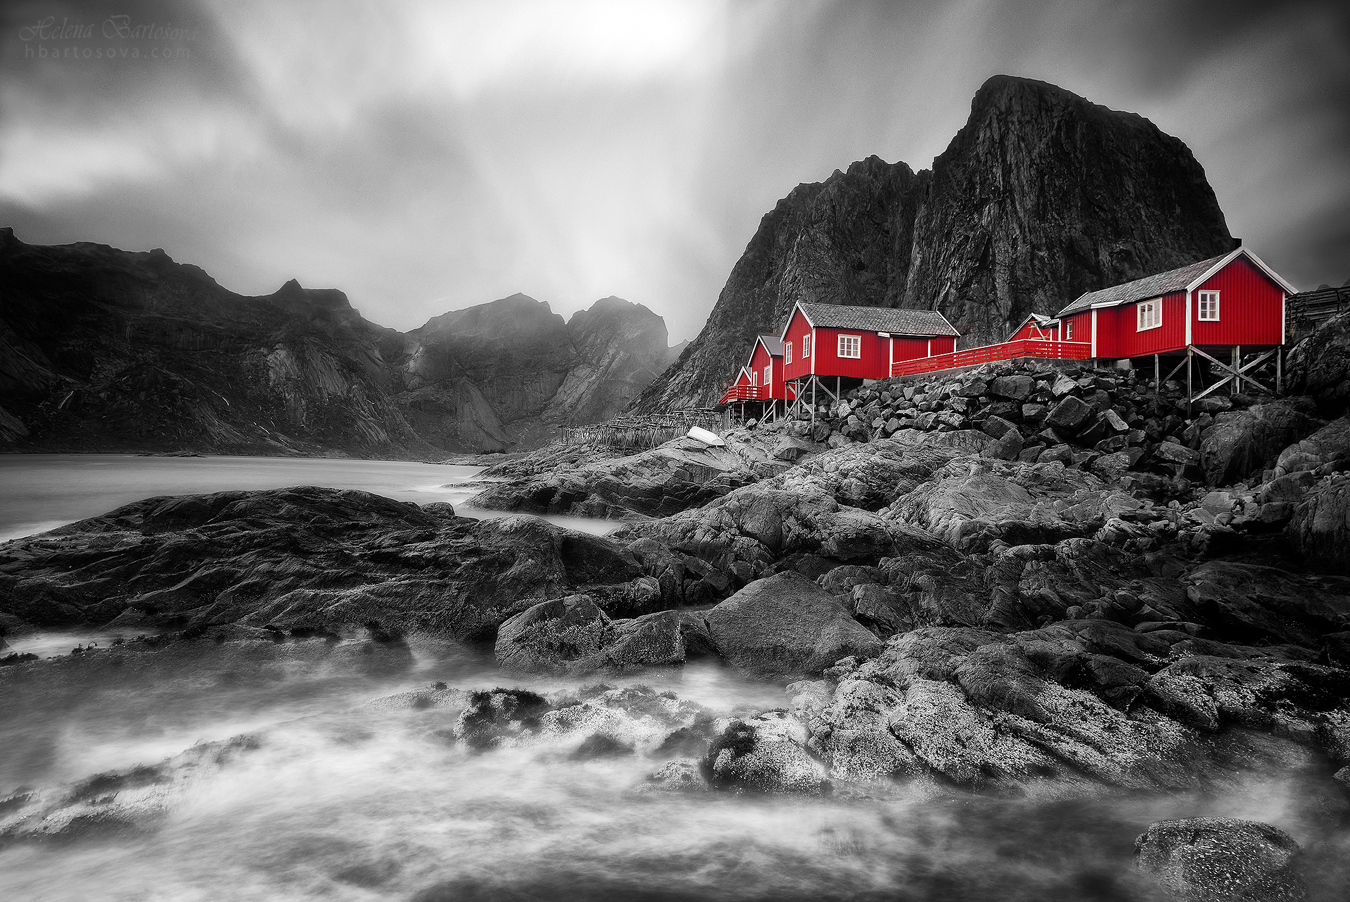 MONOCHROME AND RED (Hamnøya, Norway)